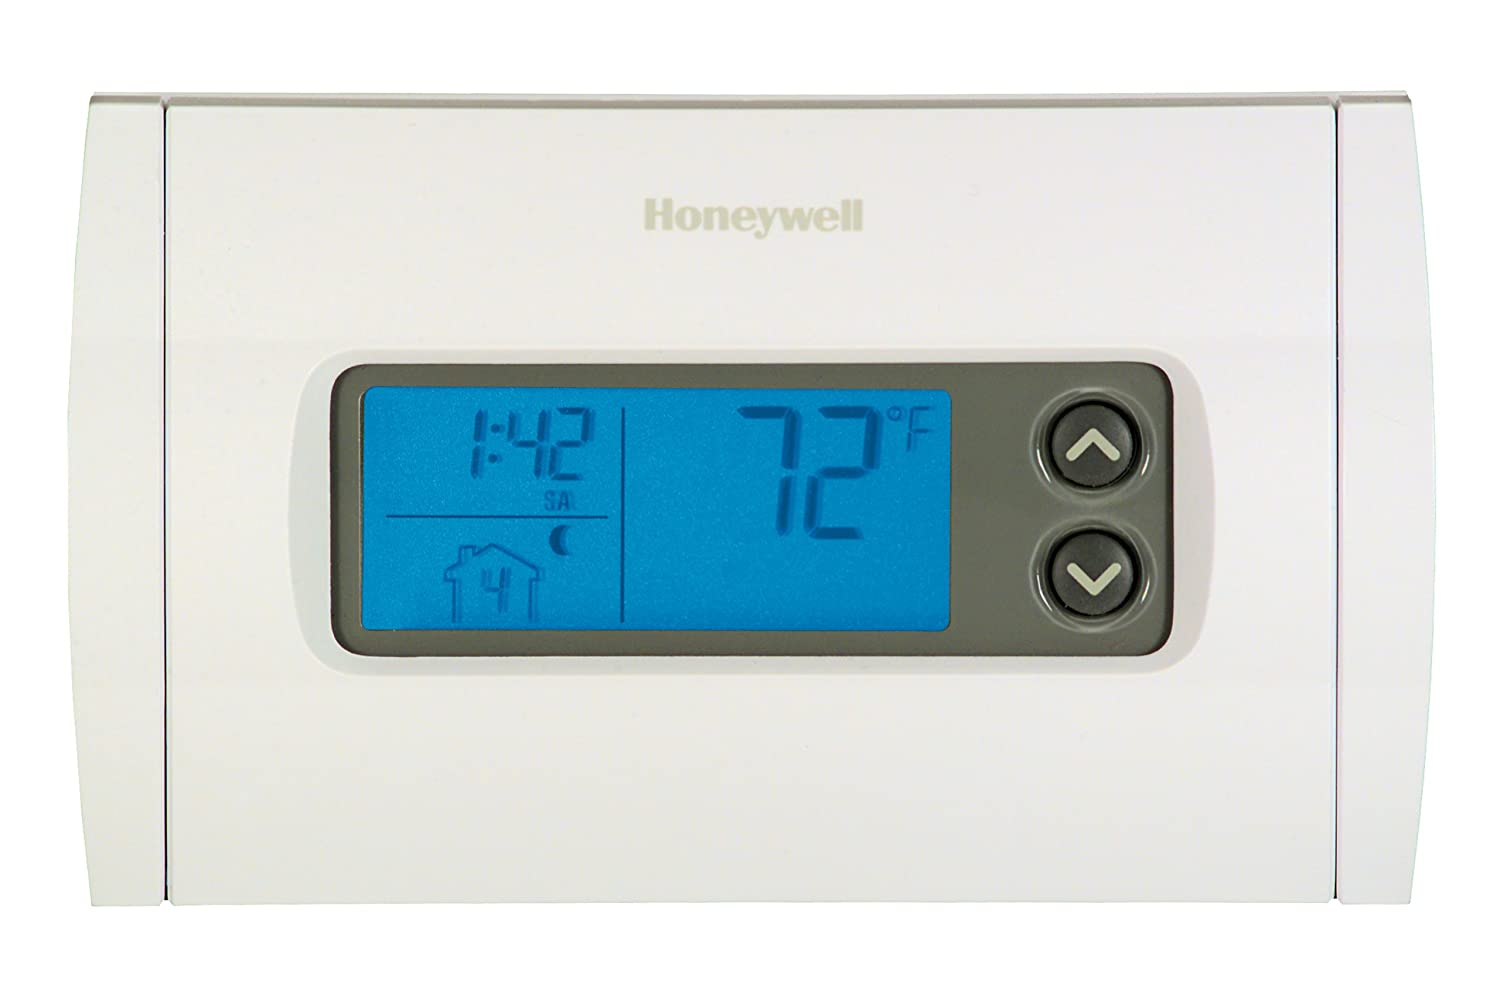 Wiring Diagram For Thermostat Honeywell : Honeywell thermostat wiring diagram